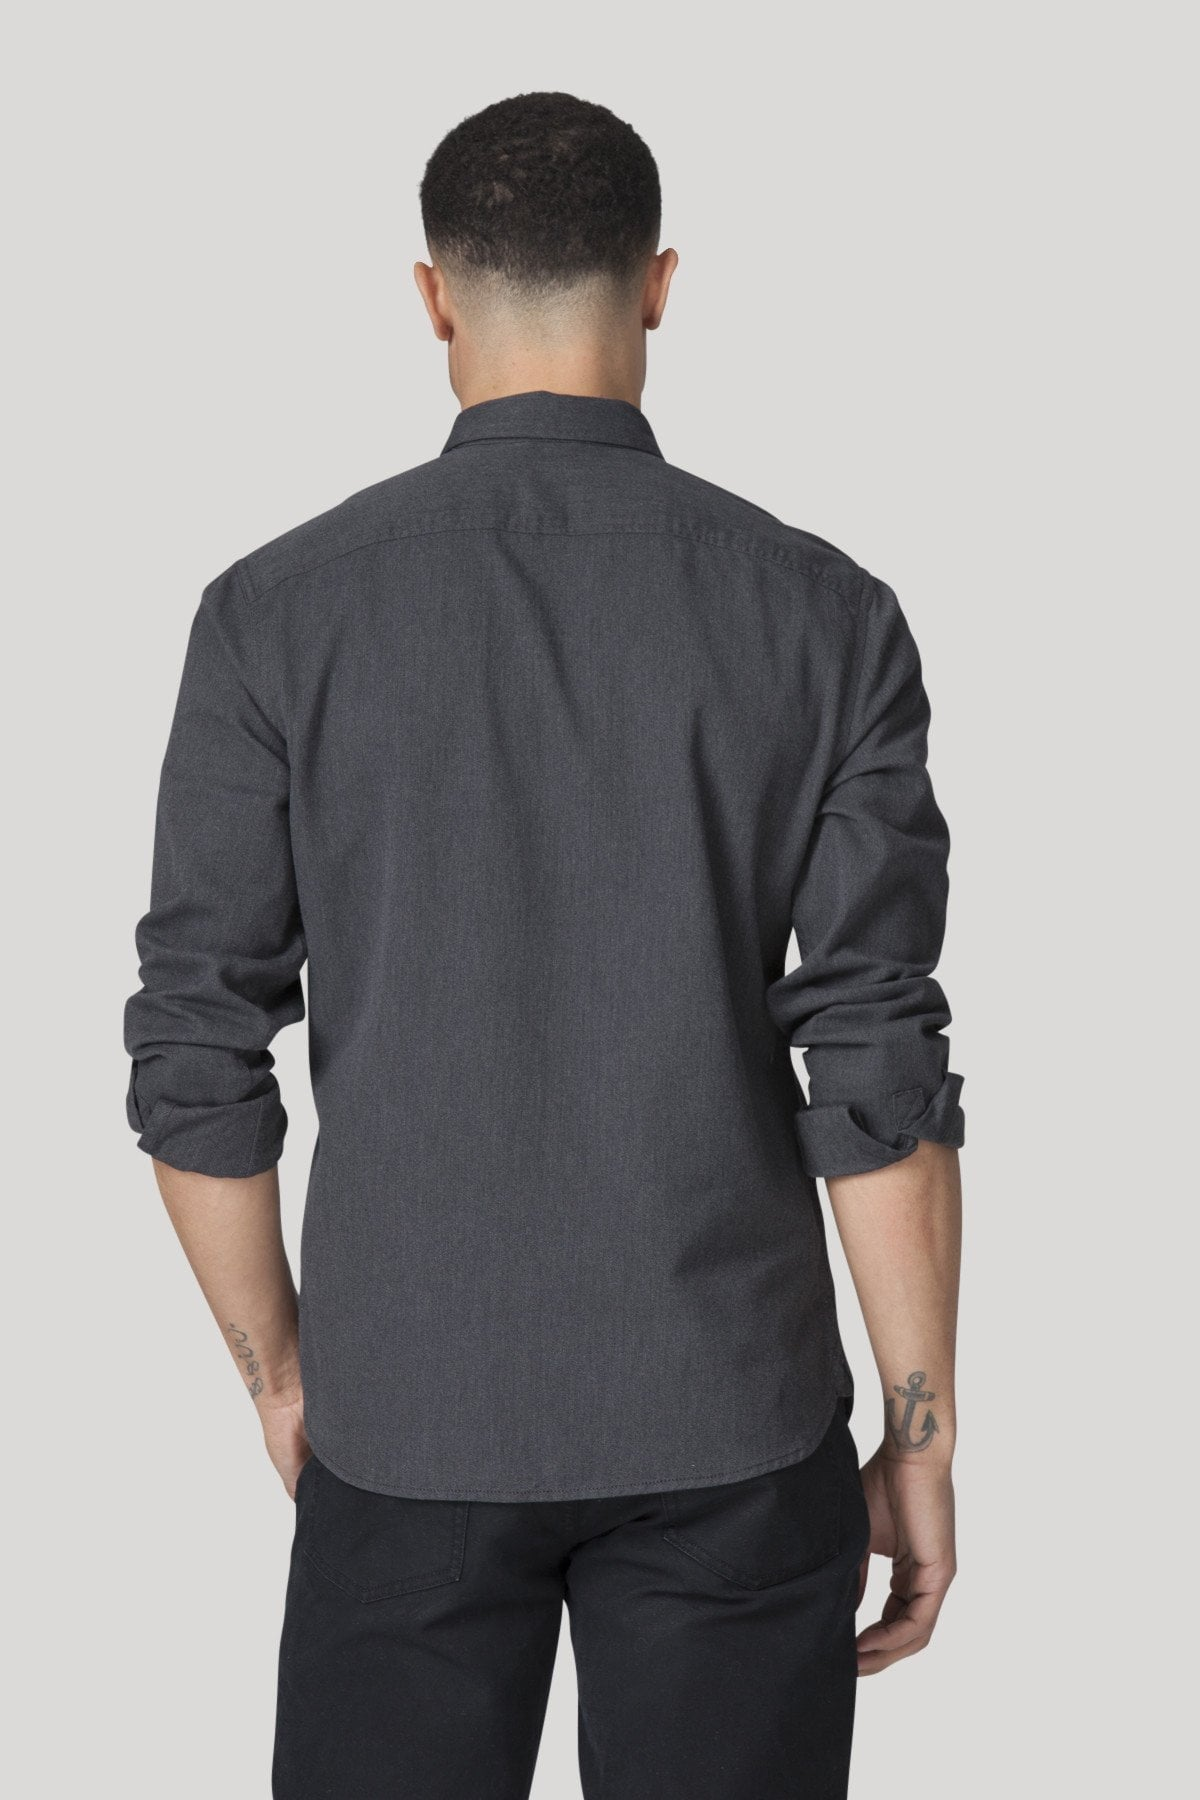 Greenlight Shirt - Heather Charcoal